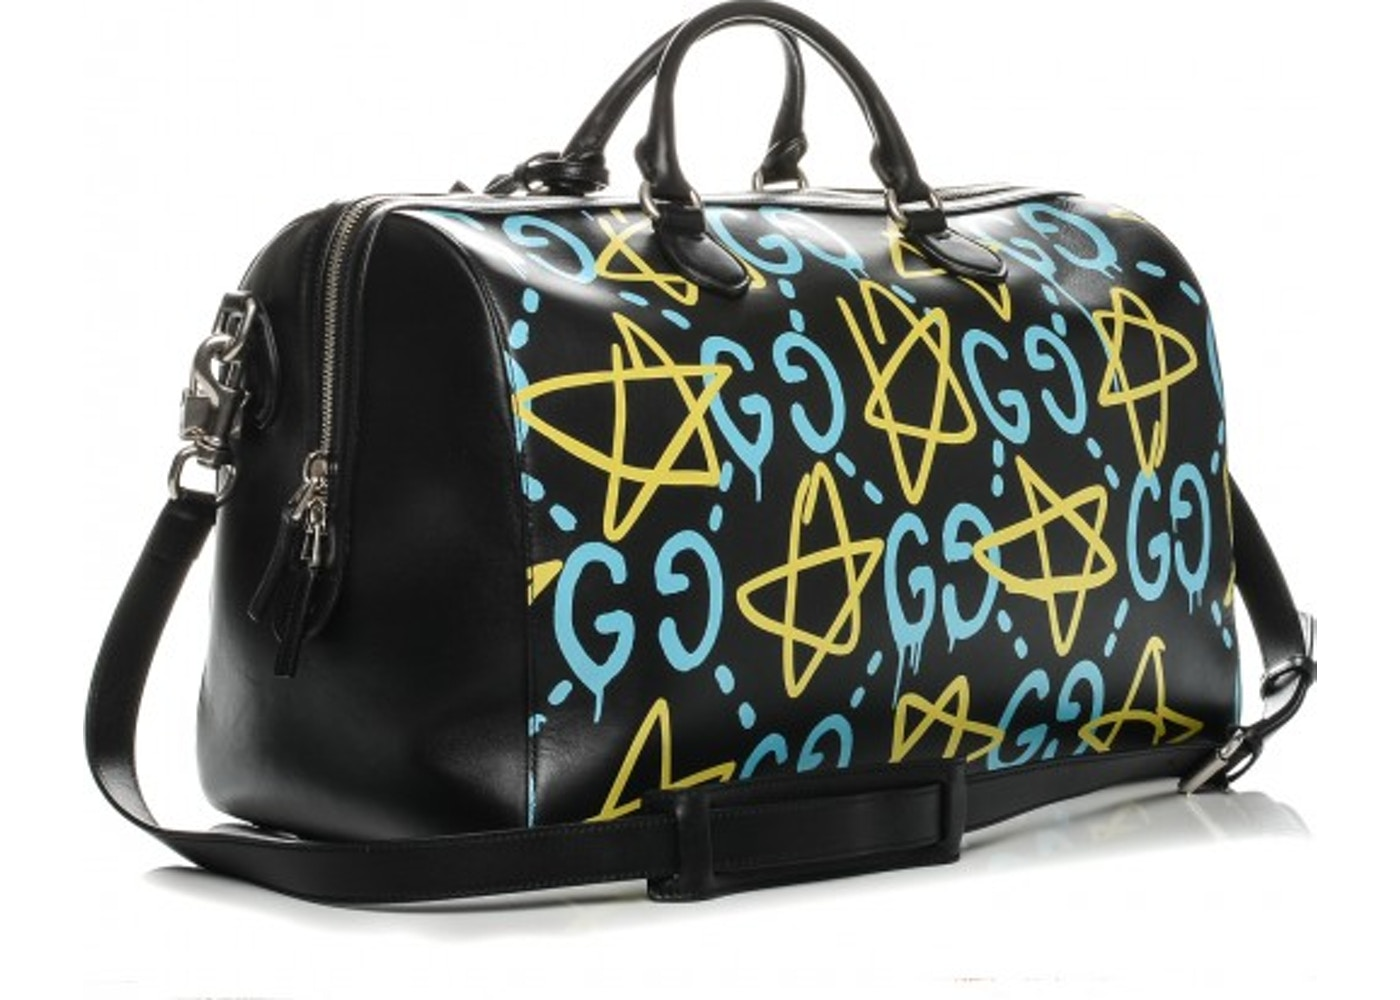 5b3e0e021faa Gucci GucciGhost Duffle Bag Black/Blue/Yellow